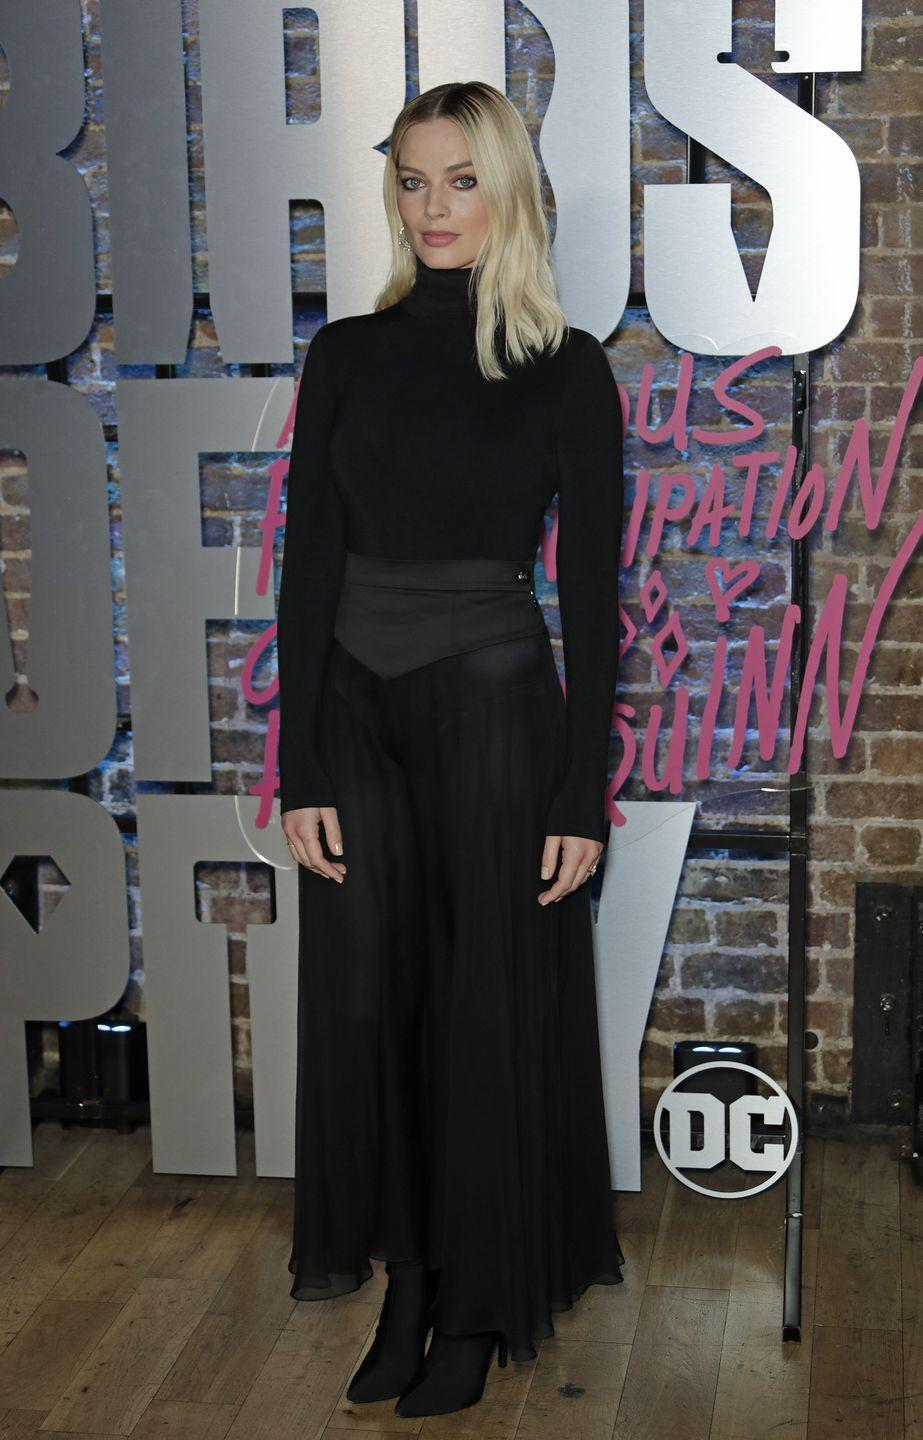 <p>The actress attended the UK photocall for her latest film Birds of Prey wearing a black roll neck, midi skirt and black pointed-toe boots. </p>